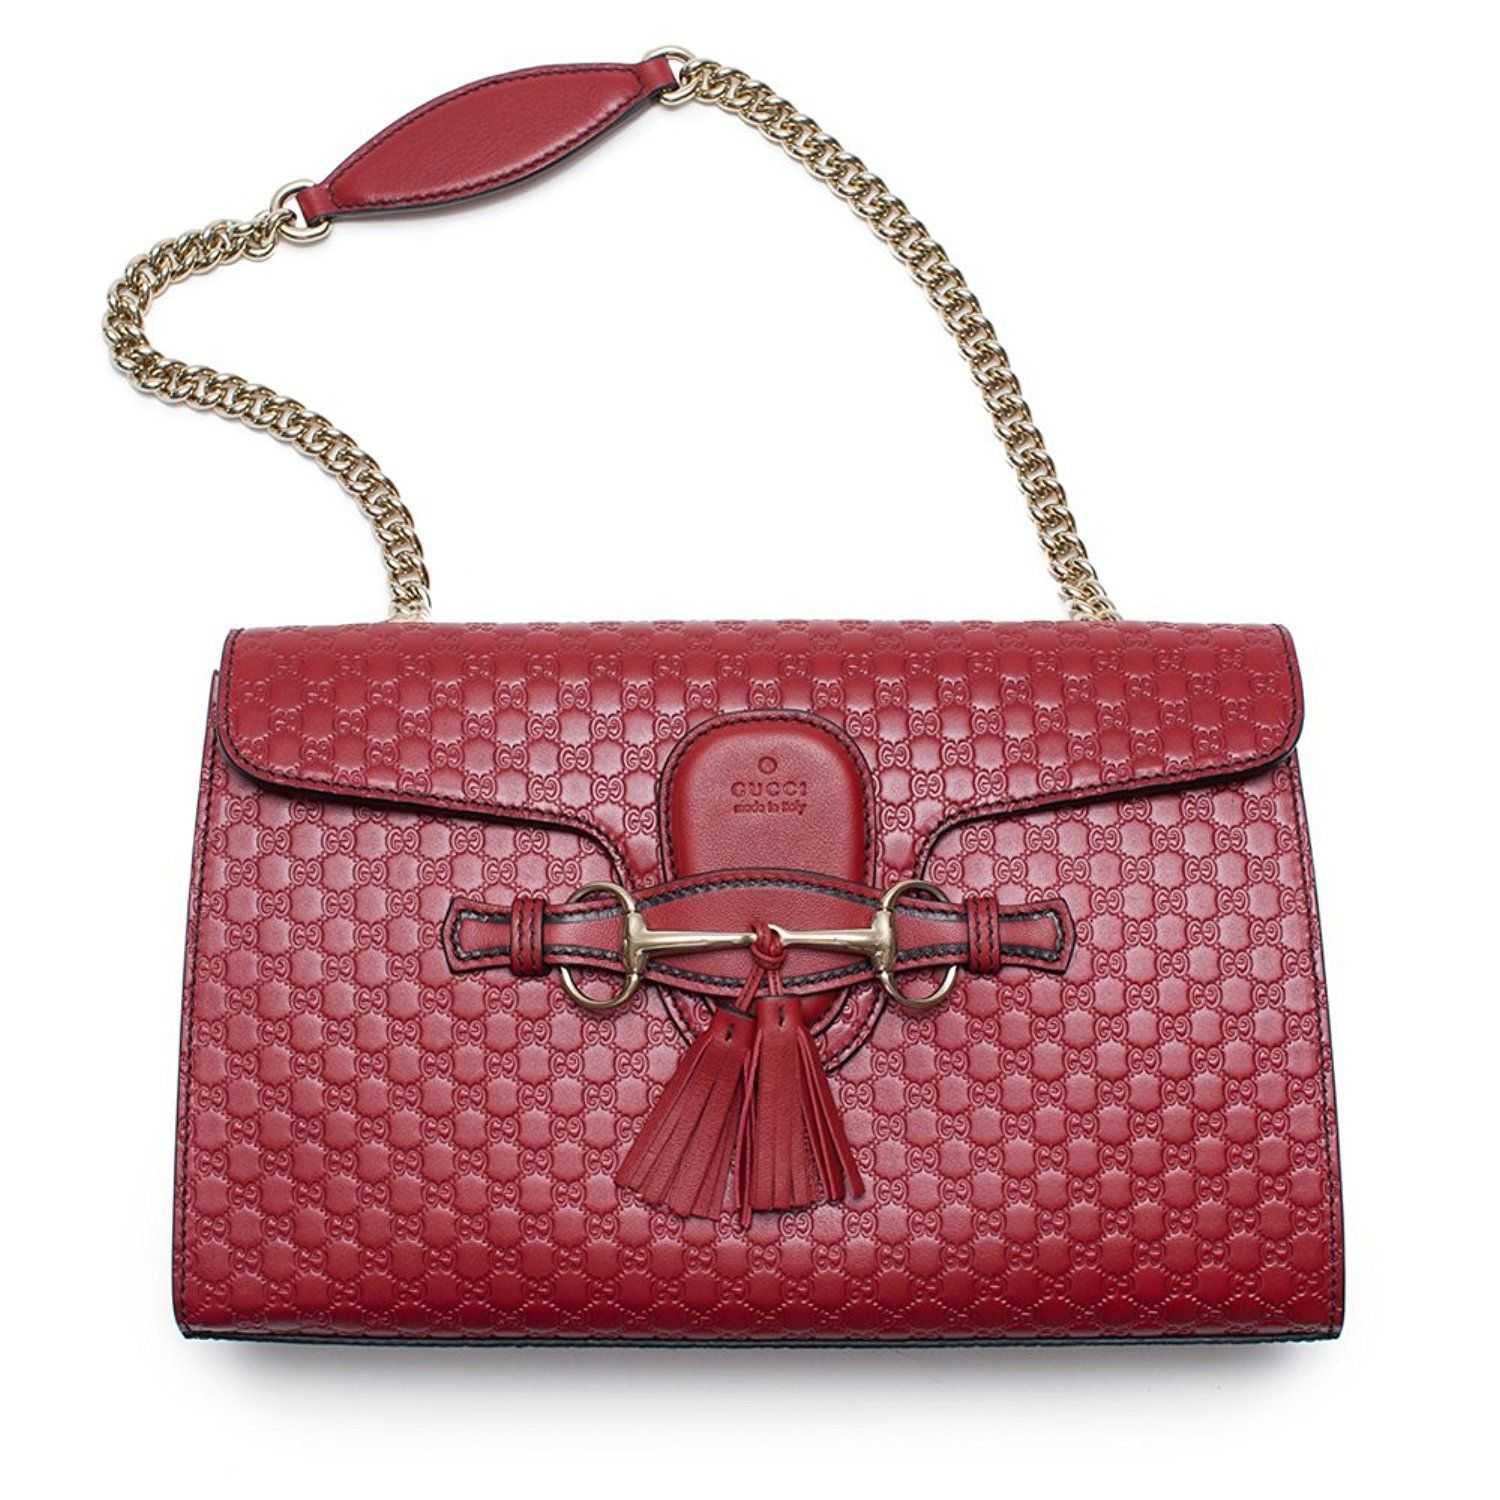 788c2cc8b GUCCI Soho Leather Chain Tabasco Red Gold Hardware Small Short Shoulder Bag  - Dimensions: 11